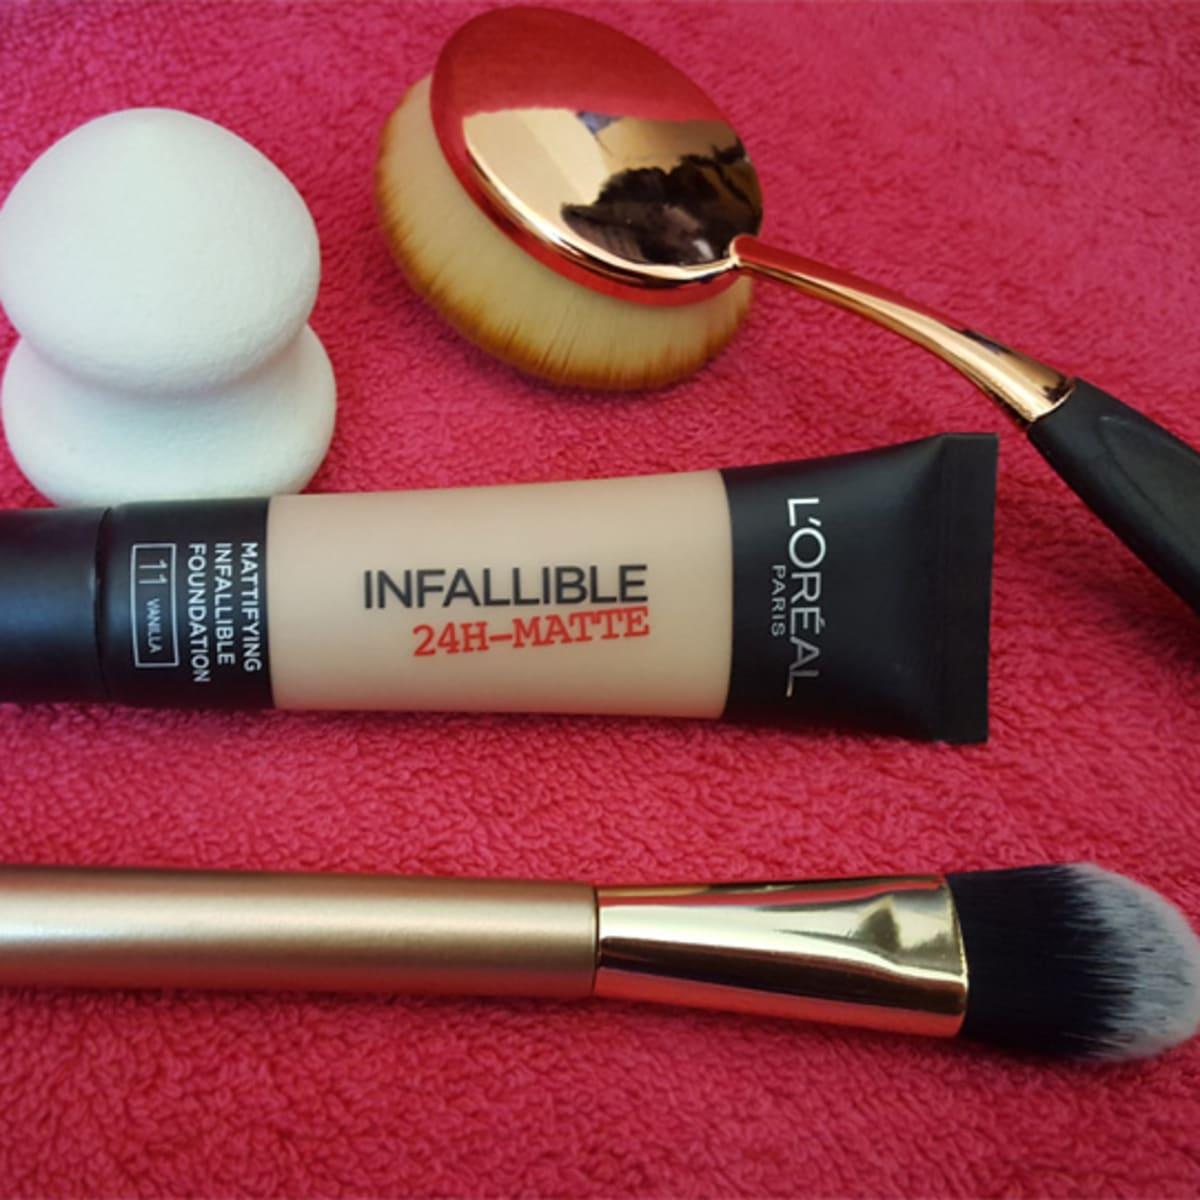 L Oreal Infallible 24hr Matte Foundation Review Bellatory Fashion And Beauty